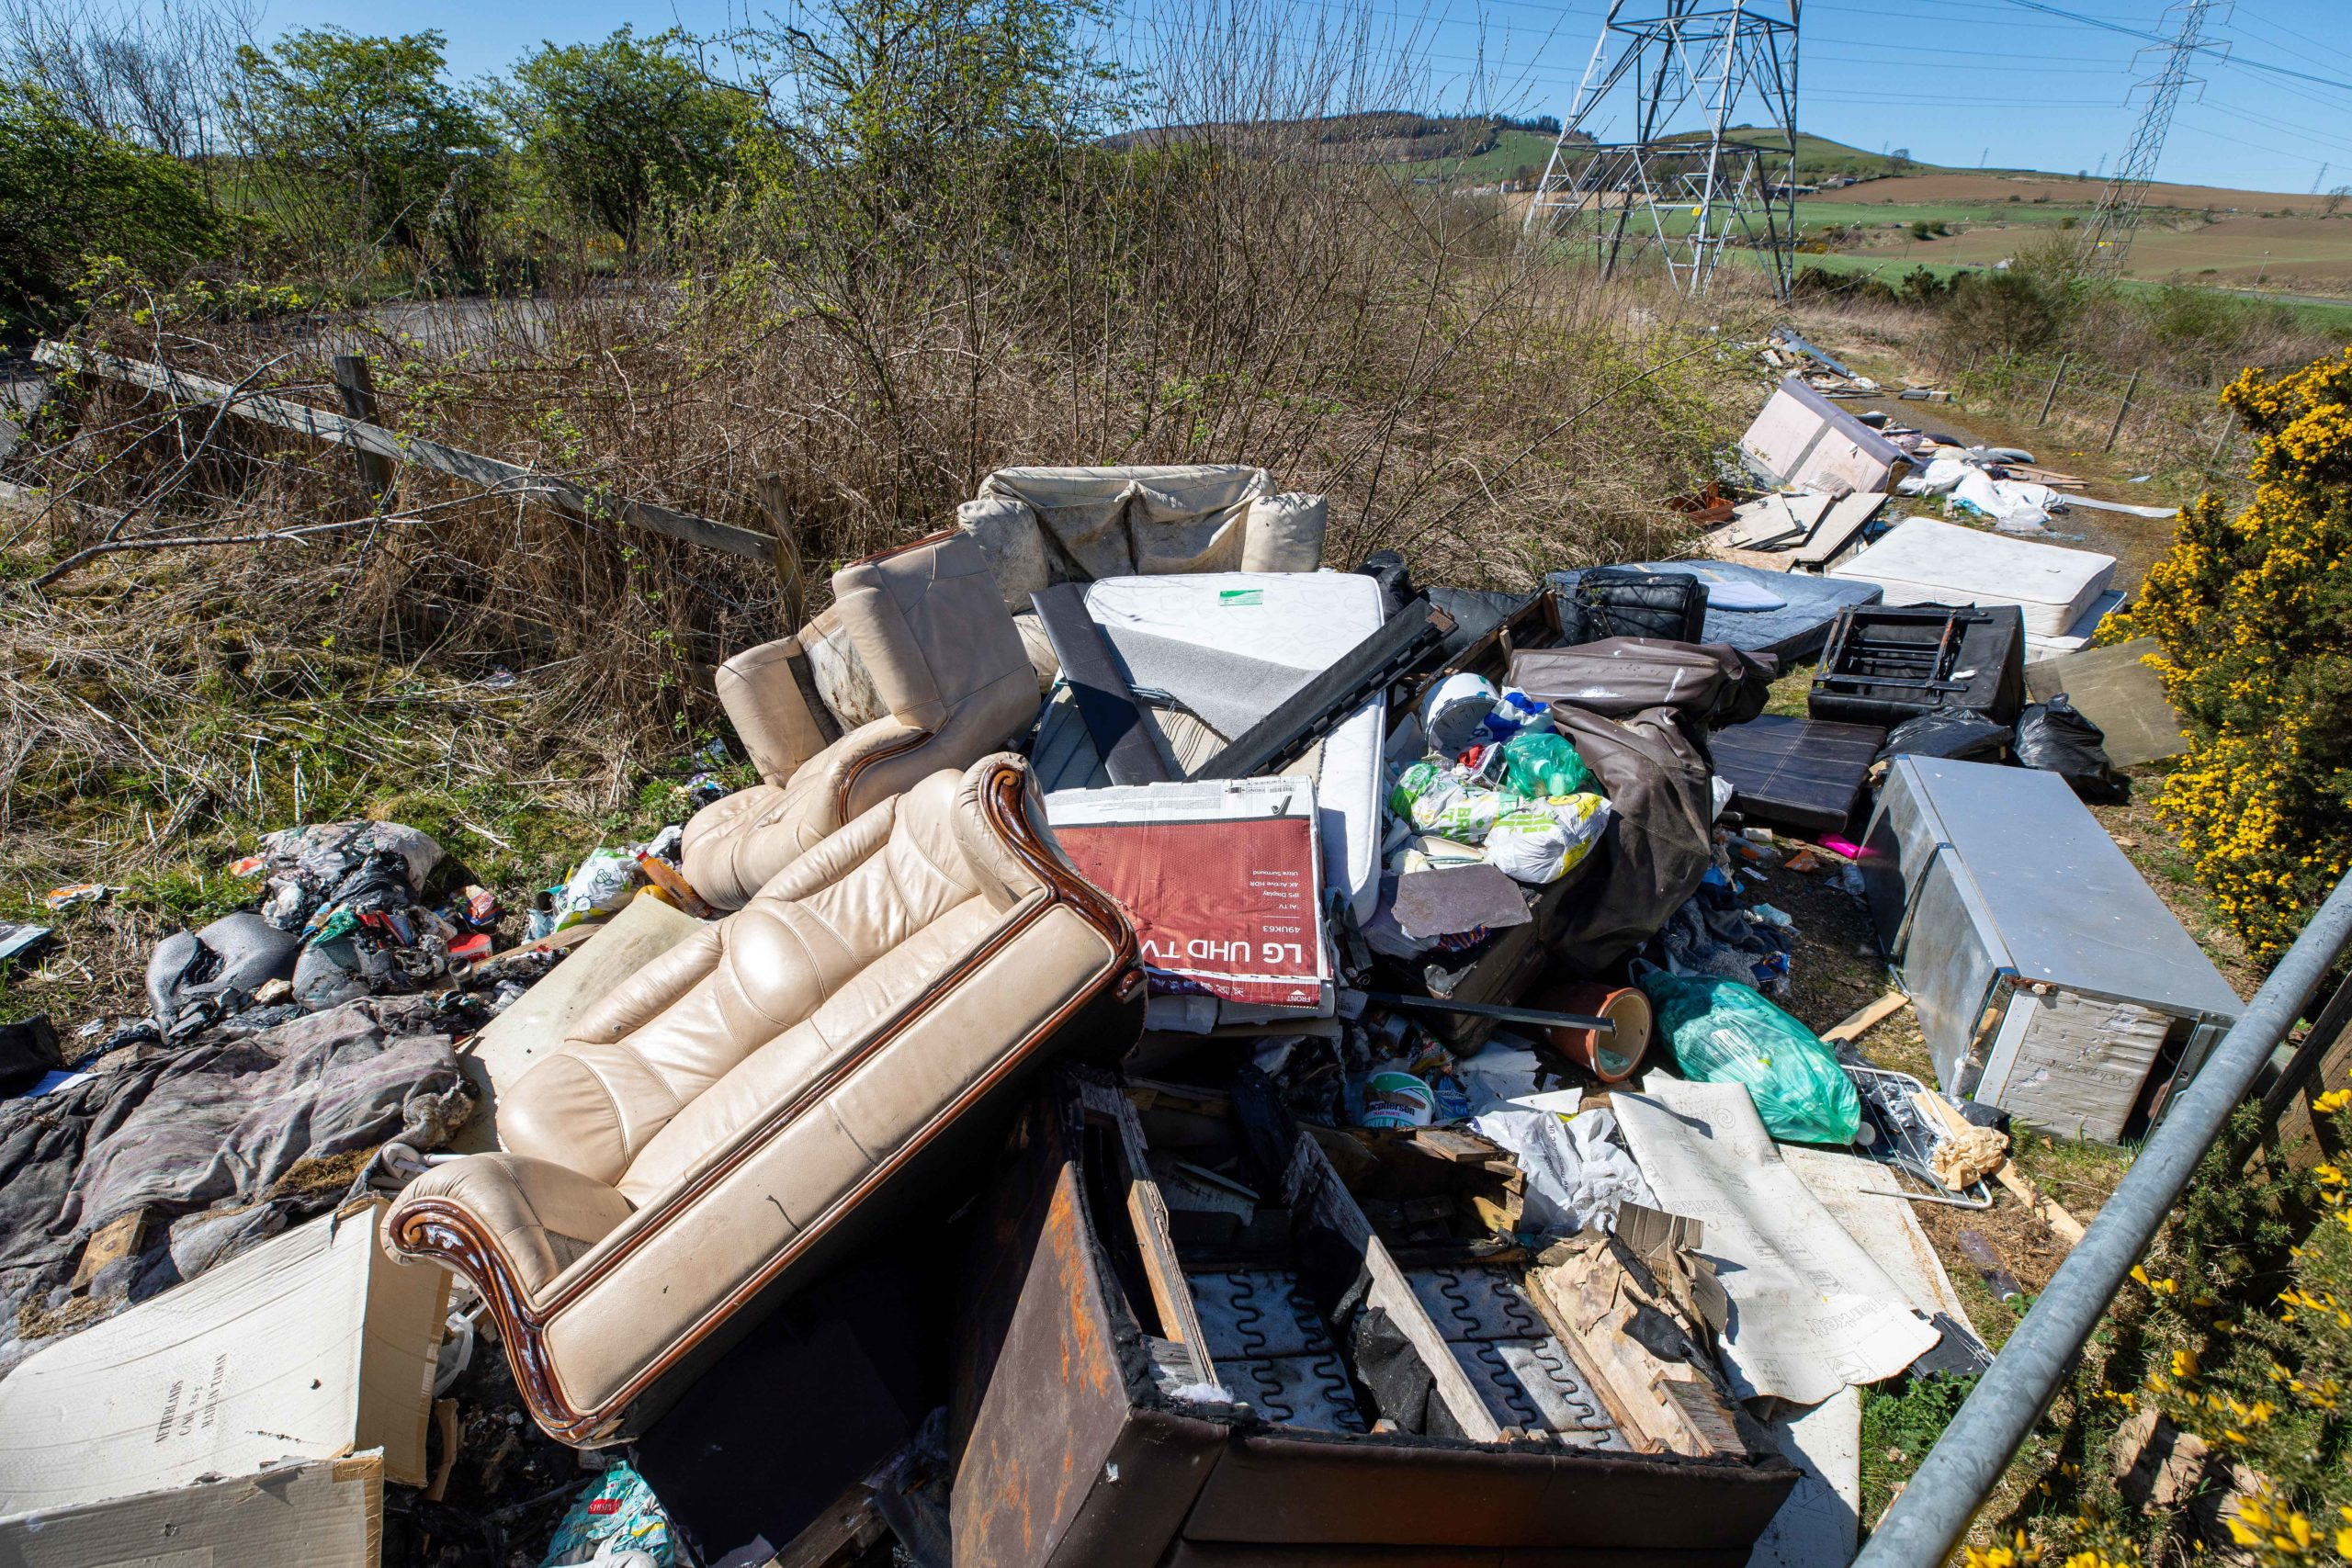 An example of fly-tipping in Fife.